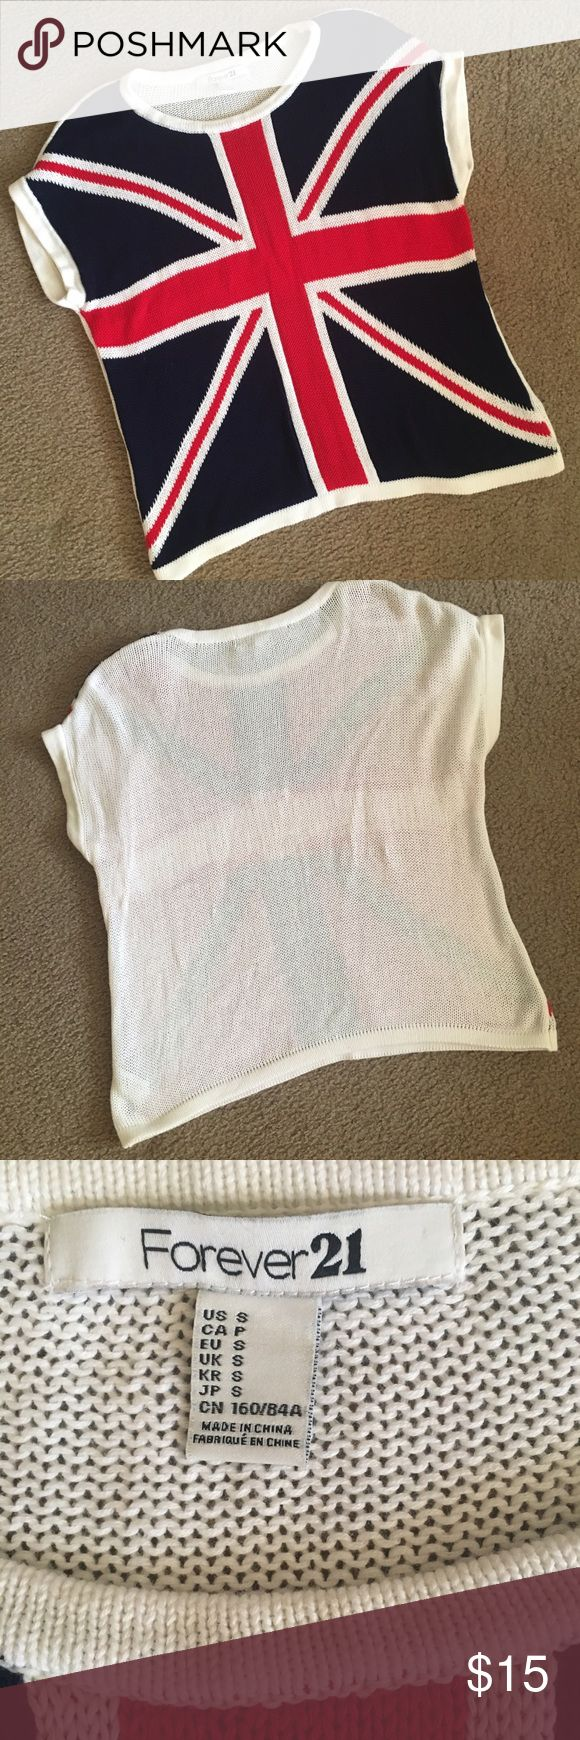 Forever 21 sweater Short sleeved light weight sweater with British flag on front and plain white back. Forever 21 Sweaters Crew & Scoop Necks